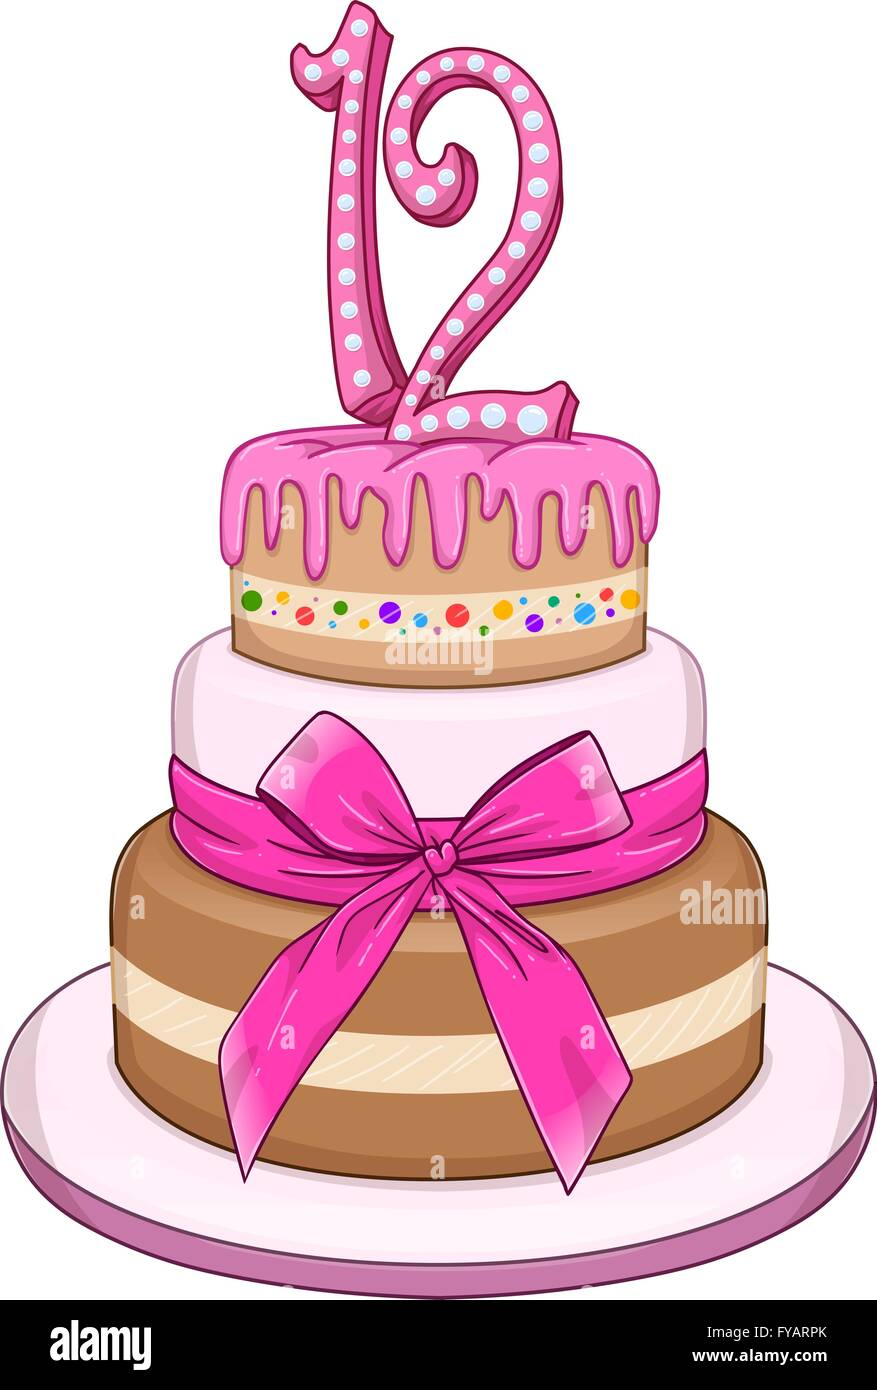 Vector Illustration Of 3 Floors Pink Cake With The Number